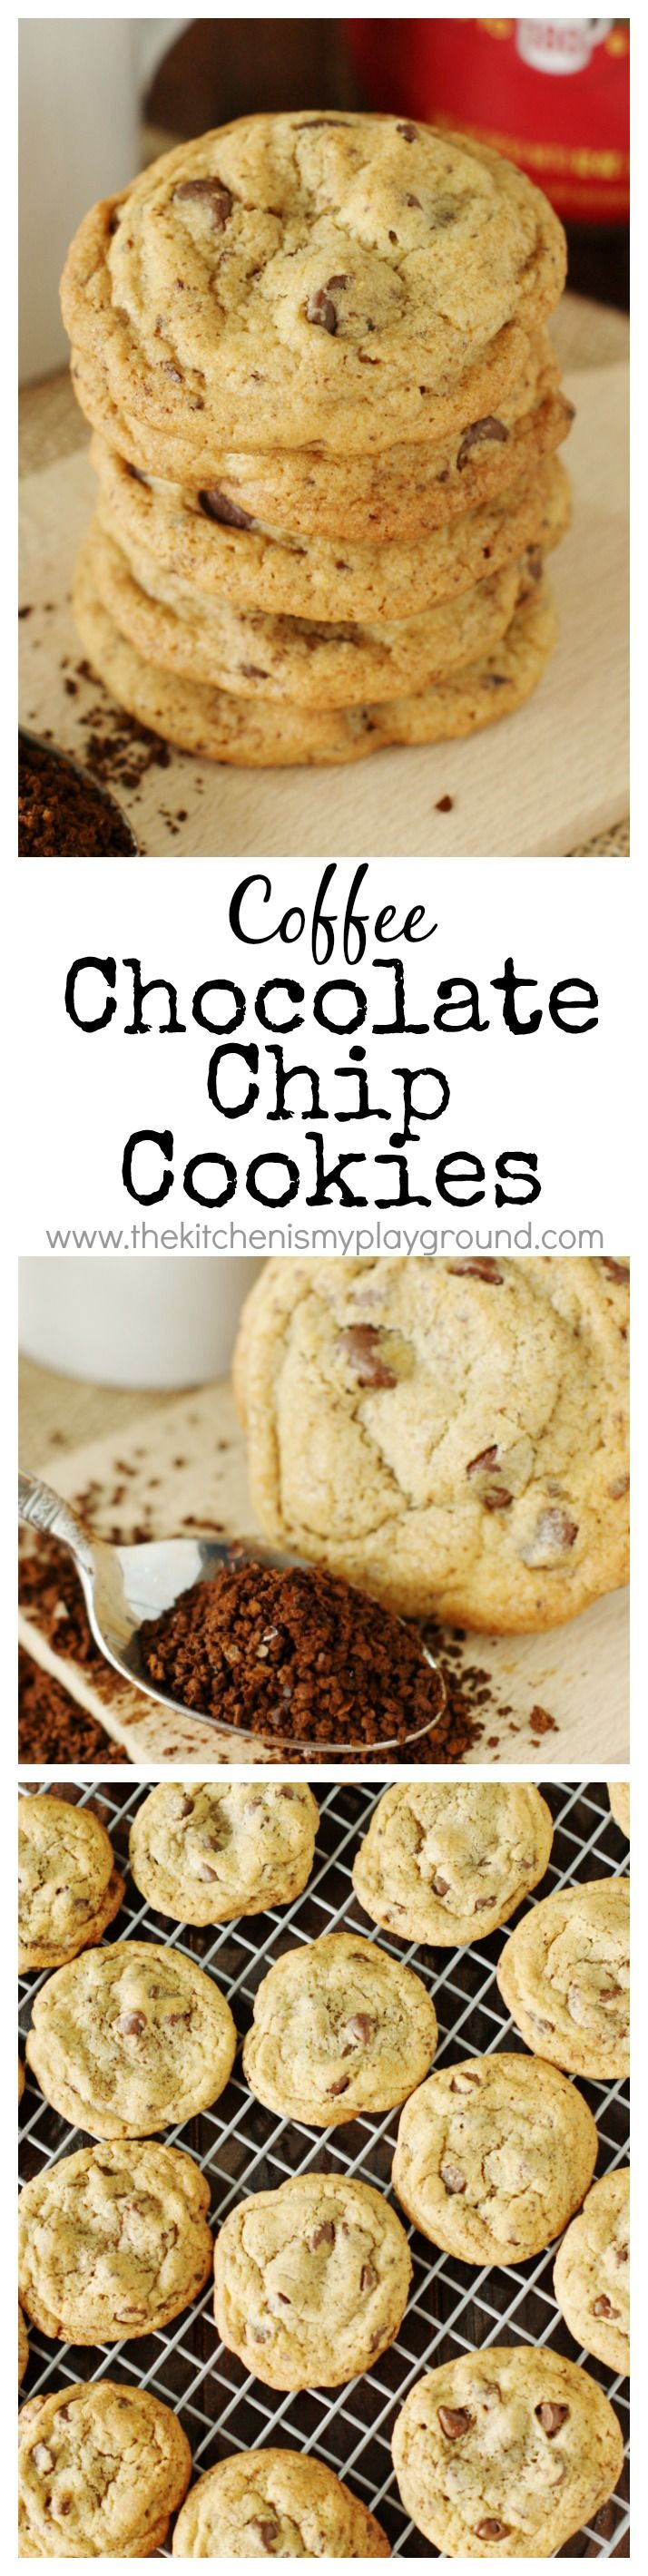 Coffee Chocolate Chip Cookies ~ Give traditional chocolate chip cookies a tasty coffee twist ... with a little hit of instant coffee granules!   #recipe #Folgers #ad www.thekitchenismyplayground.com